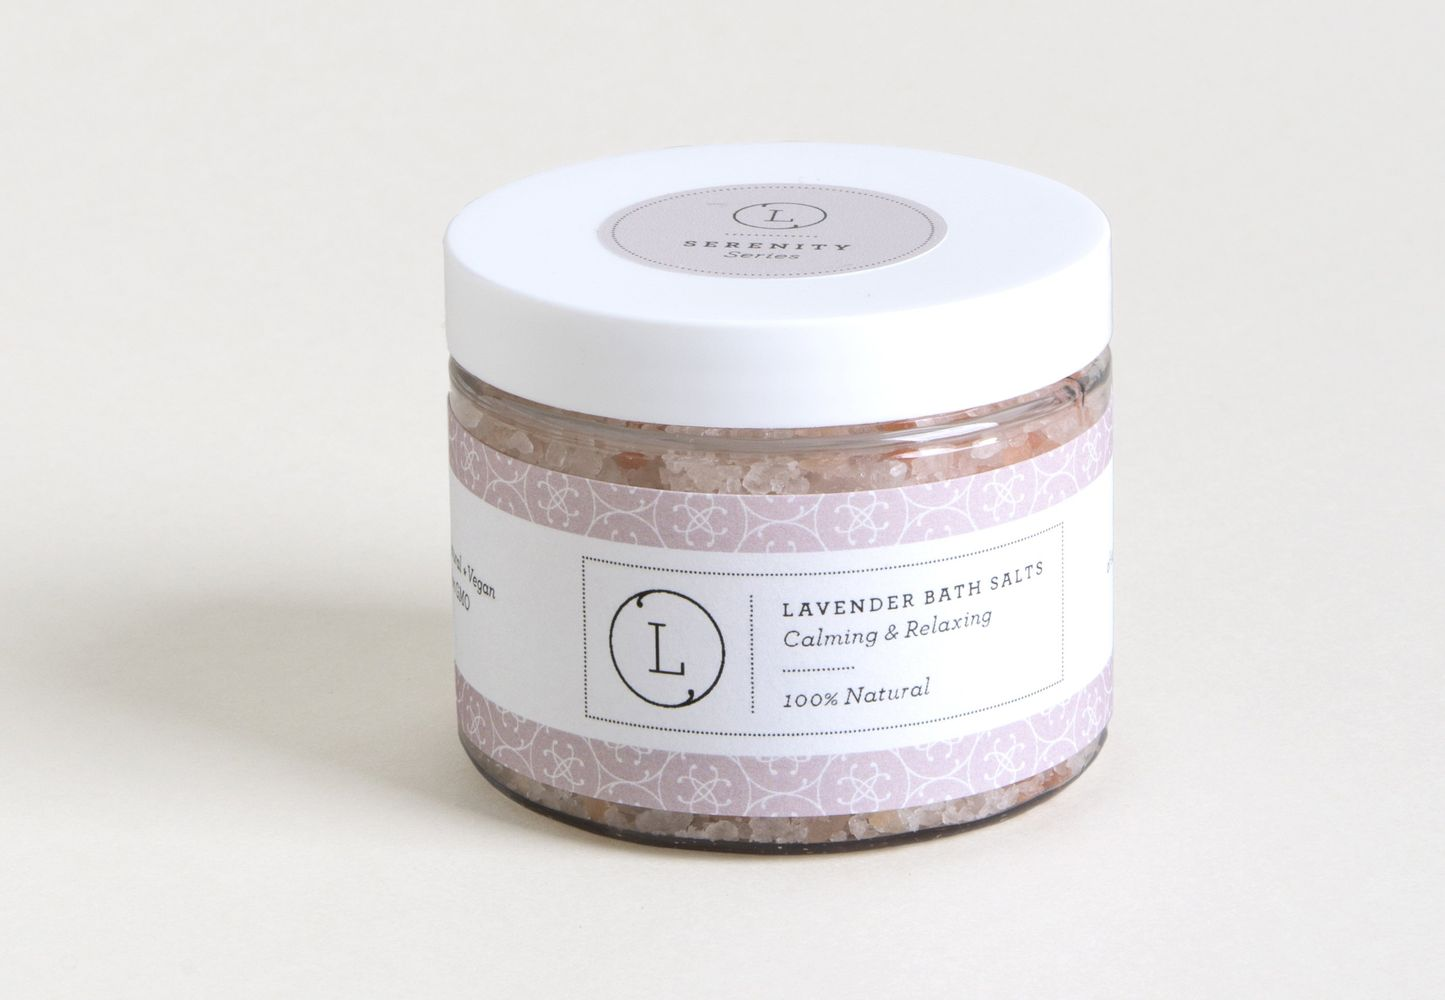 Lavender Natural Bath Salt Soak - With Dead sea, Epsom and Himalayan salts